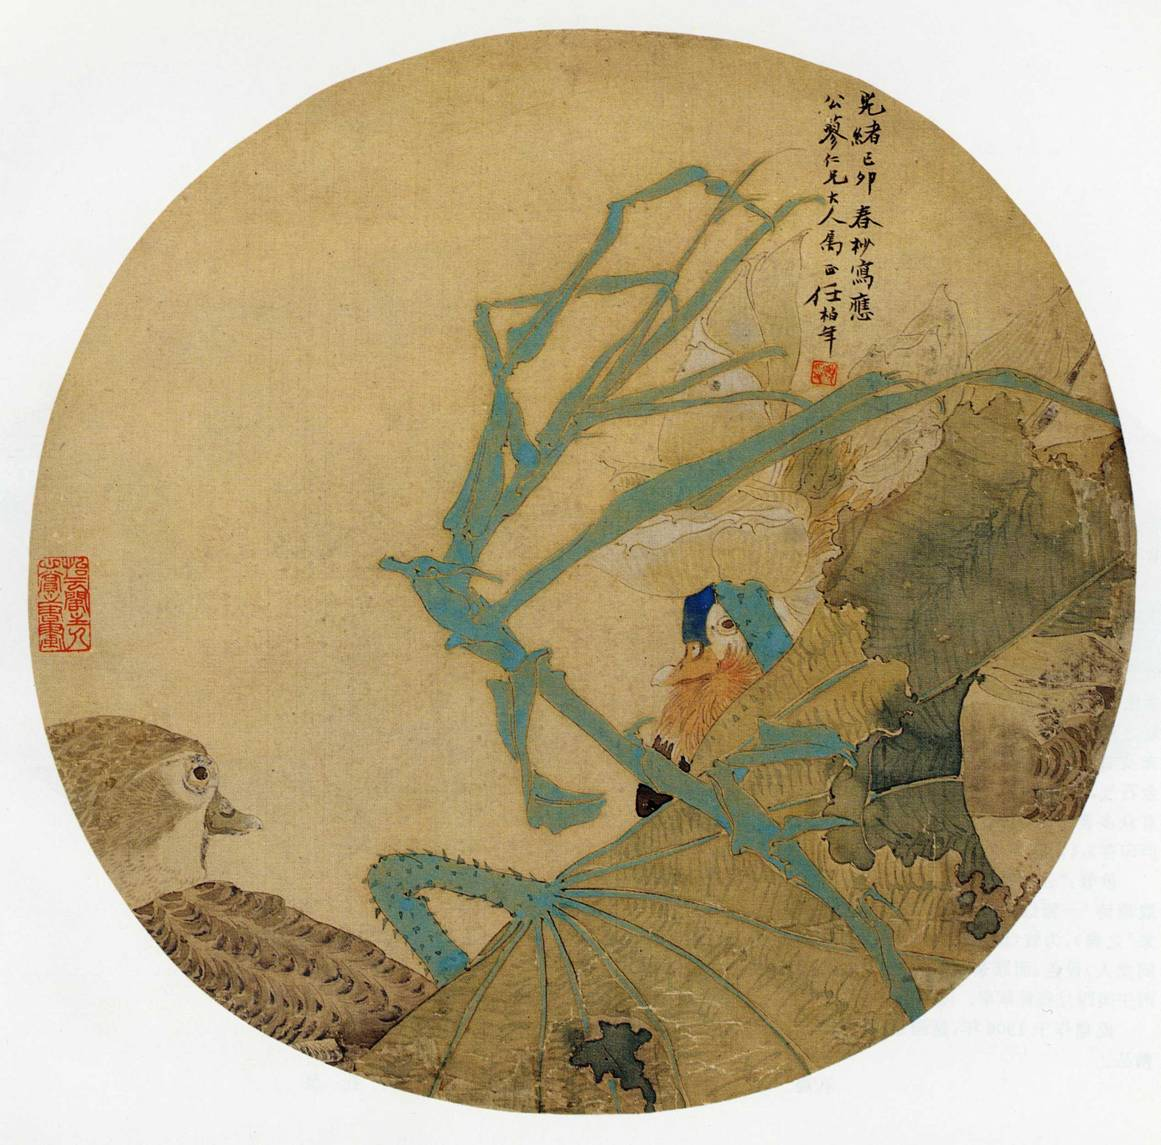 Fans and their Audiences in Late 19th century Shanghai: The Urban Bird-and-Flower Fan Paintings of Ren Bonian (1840-1896)